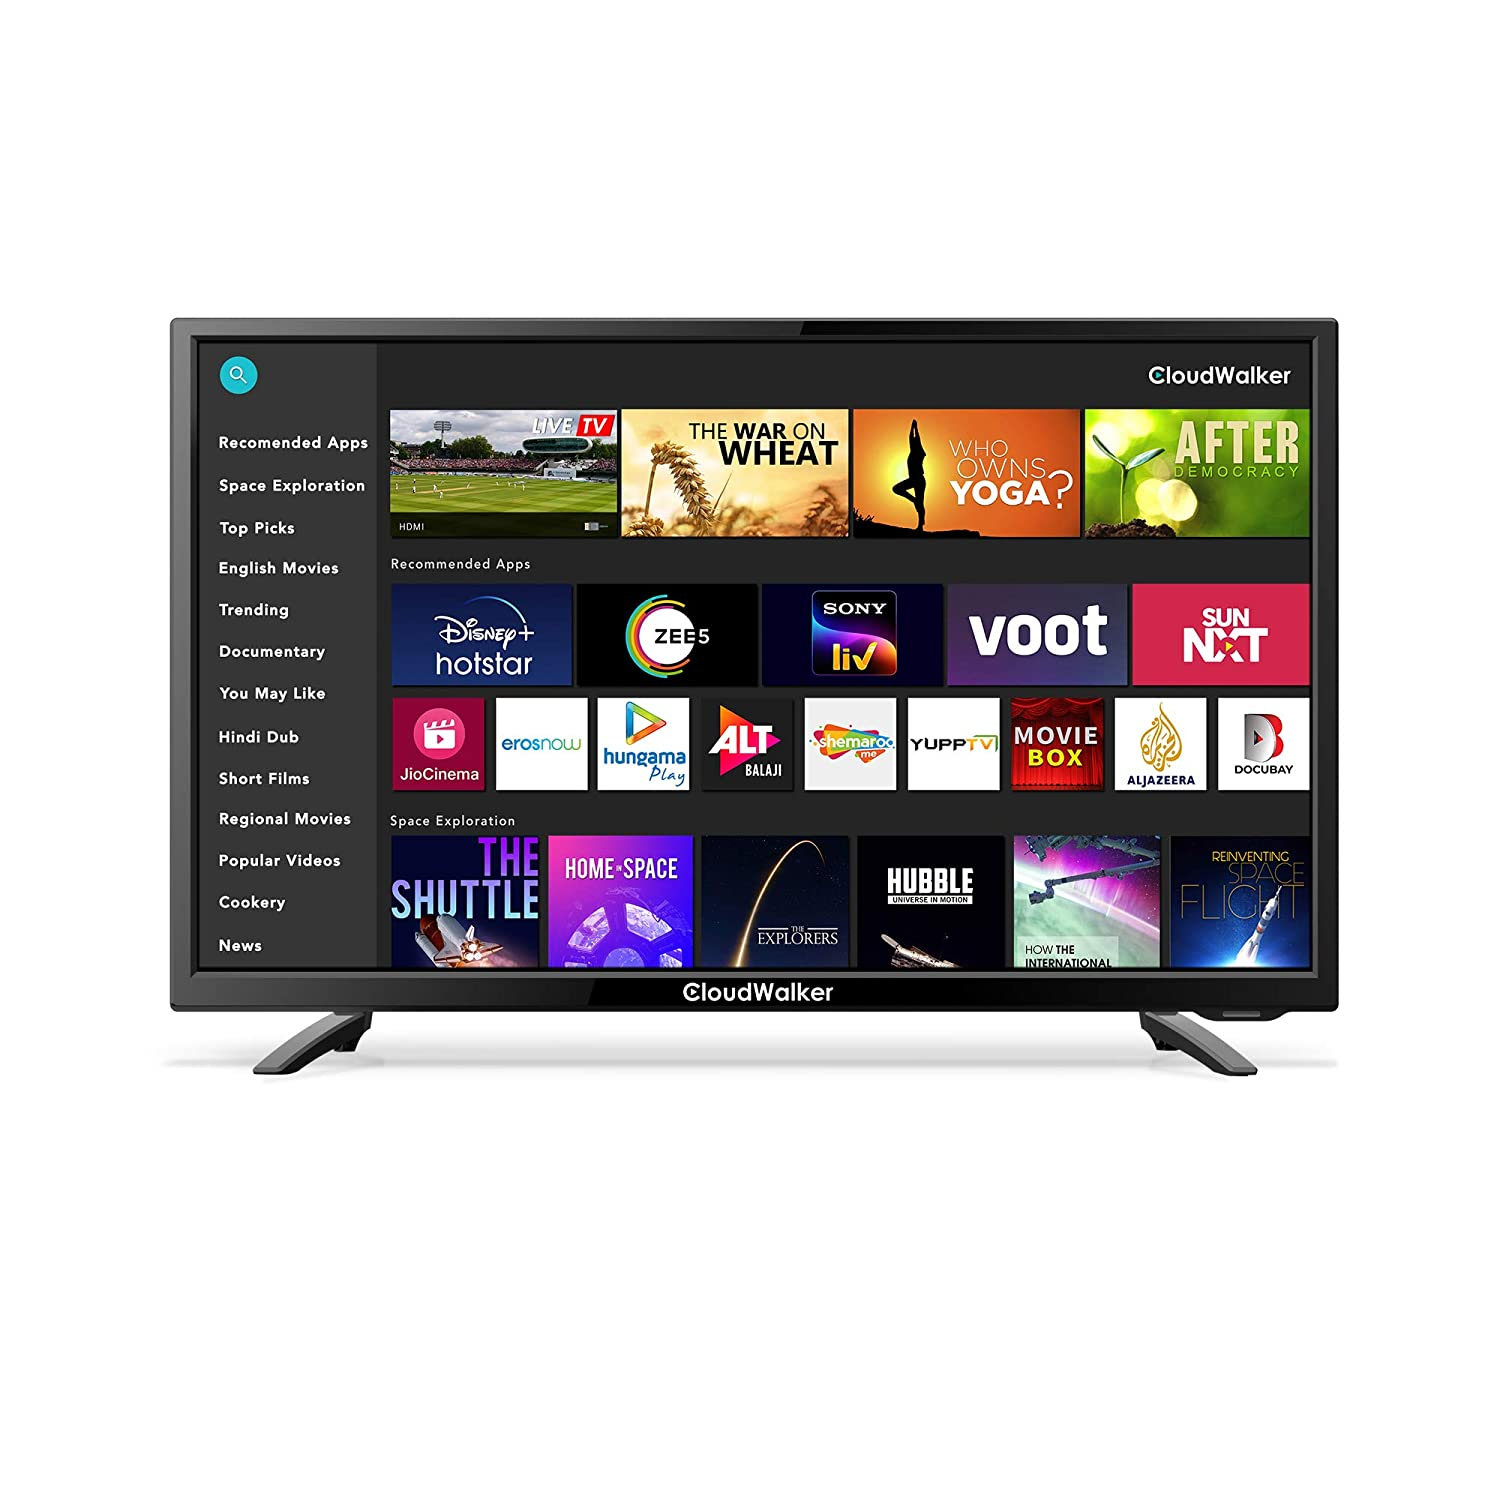 CloudWalker 80 cm (32 inches) HD Ready Smart LED TV Cloud X3 32SHX3 (Black)